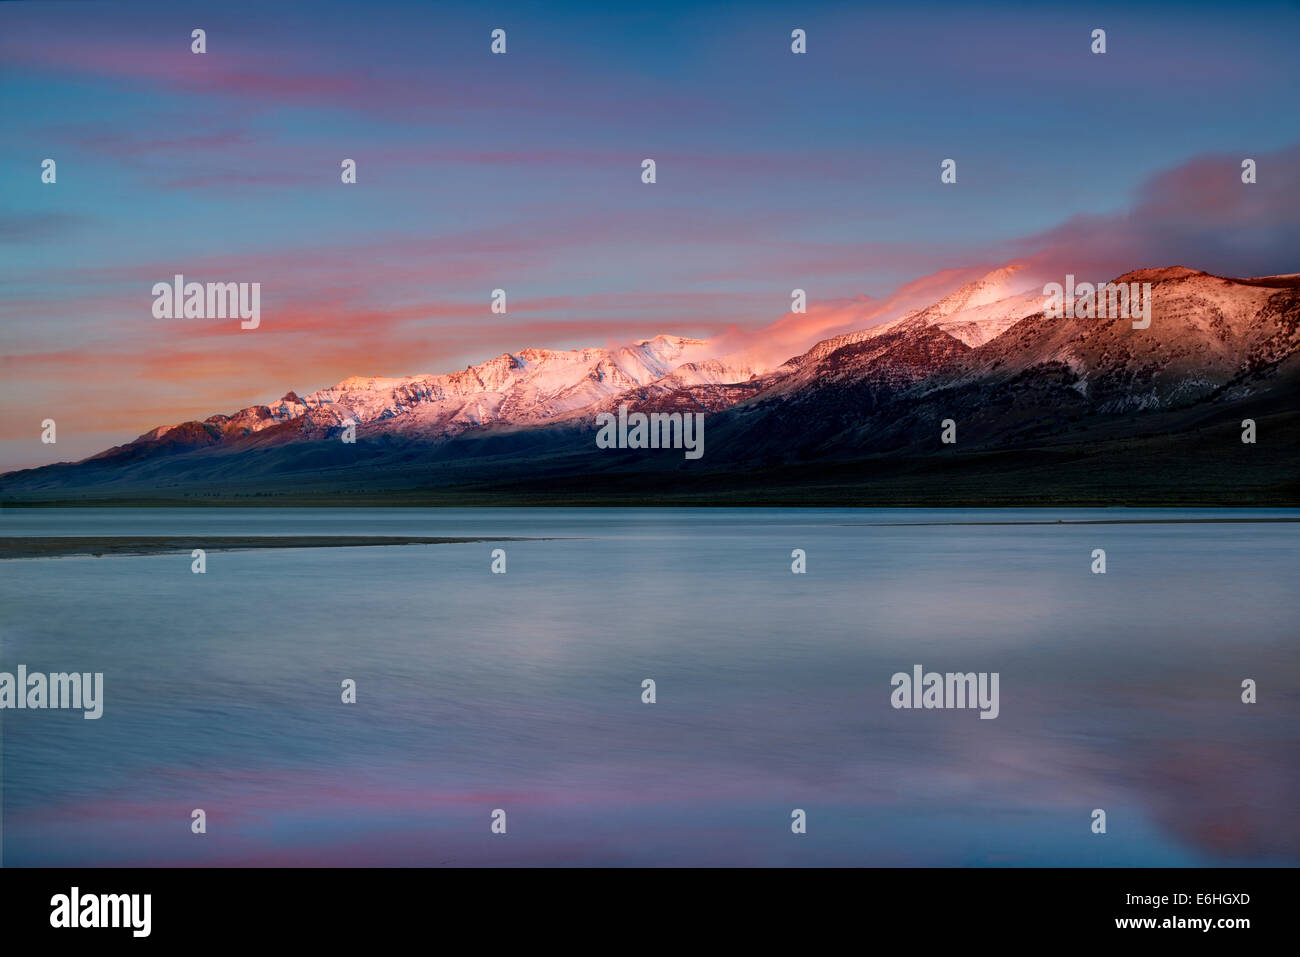 Mann Lake and Steens Mountain at sunrise, Oregon - Stock Image